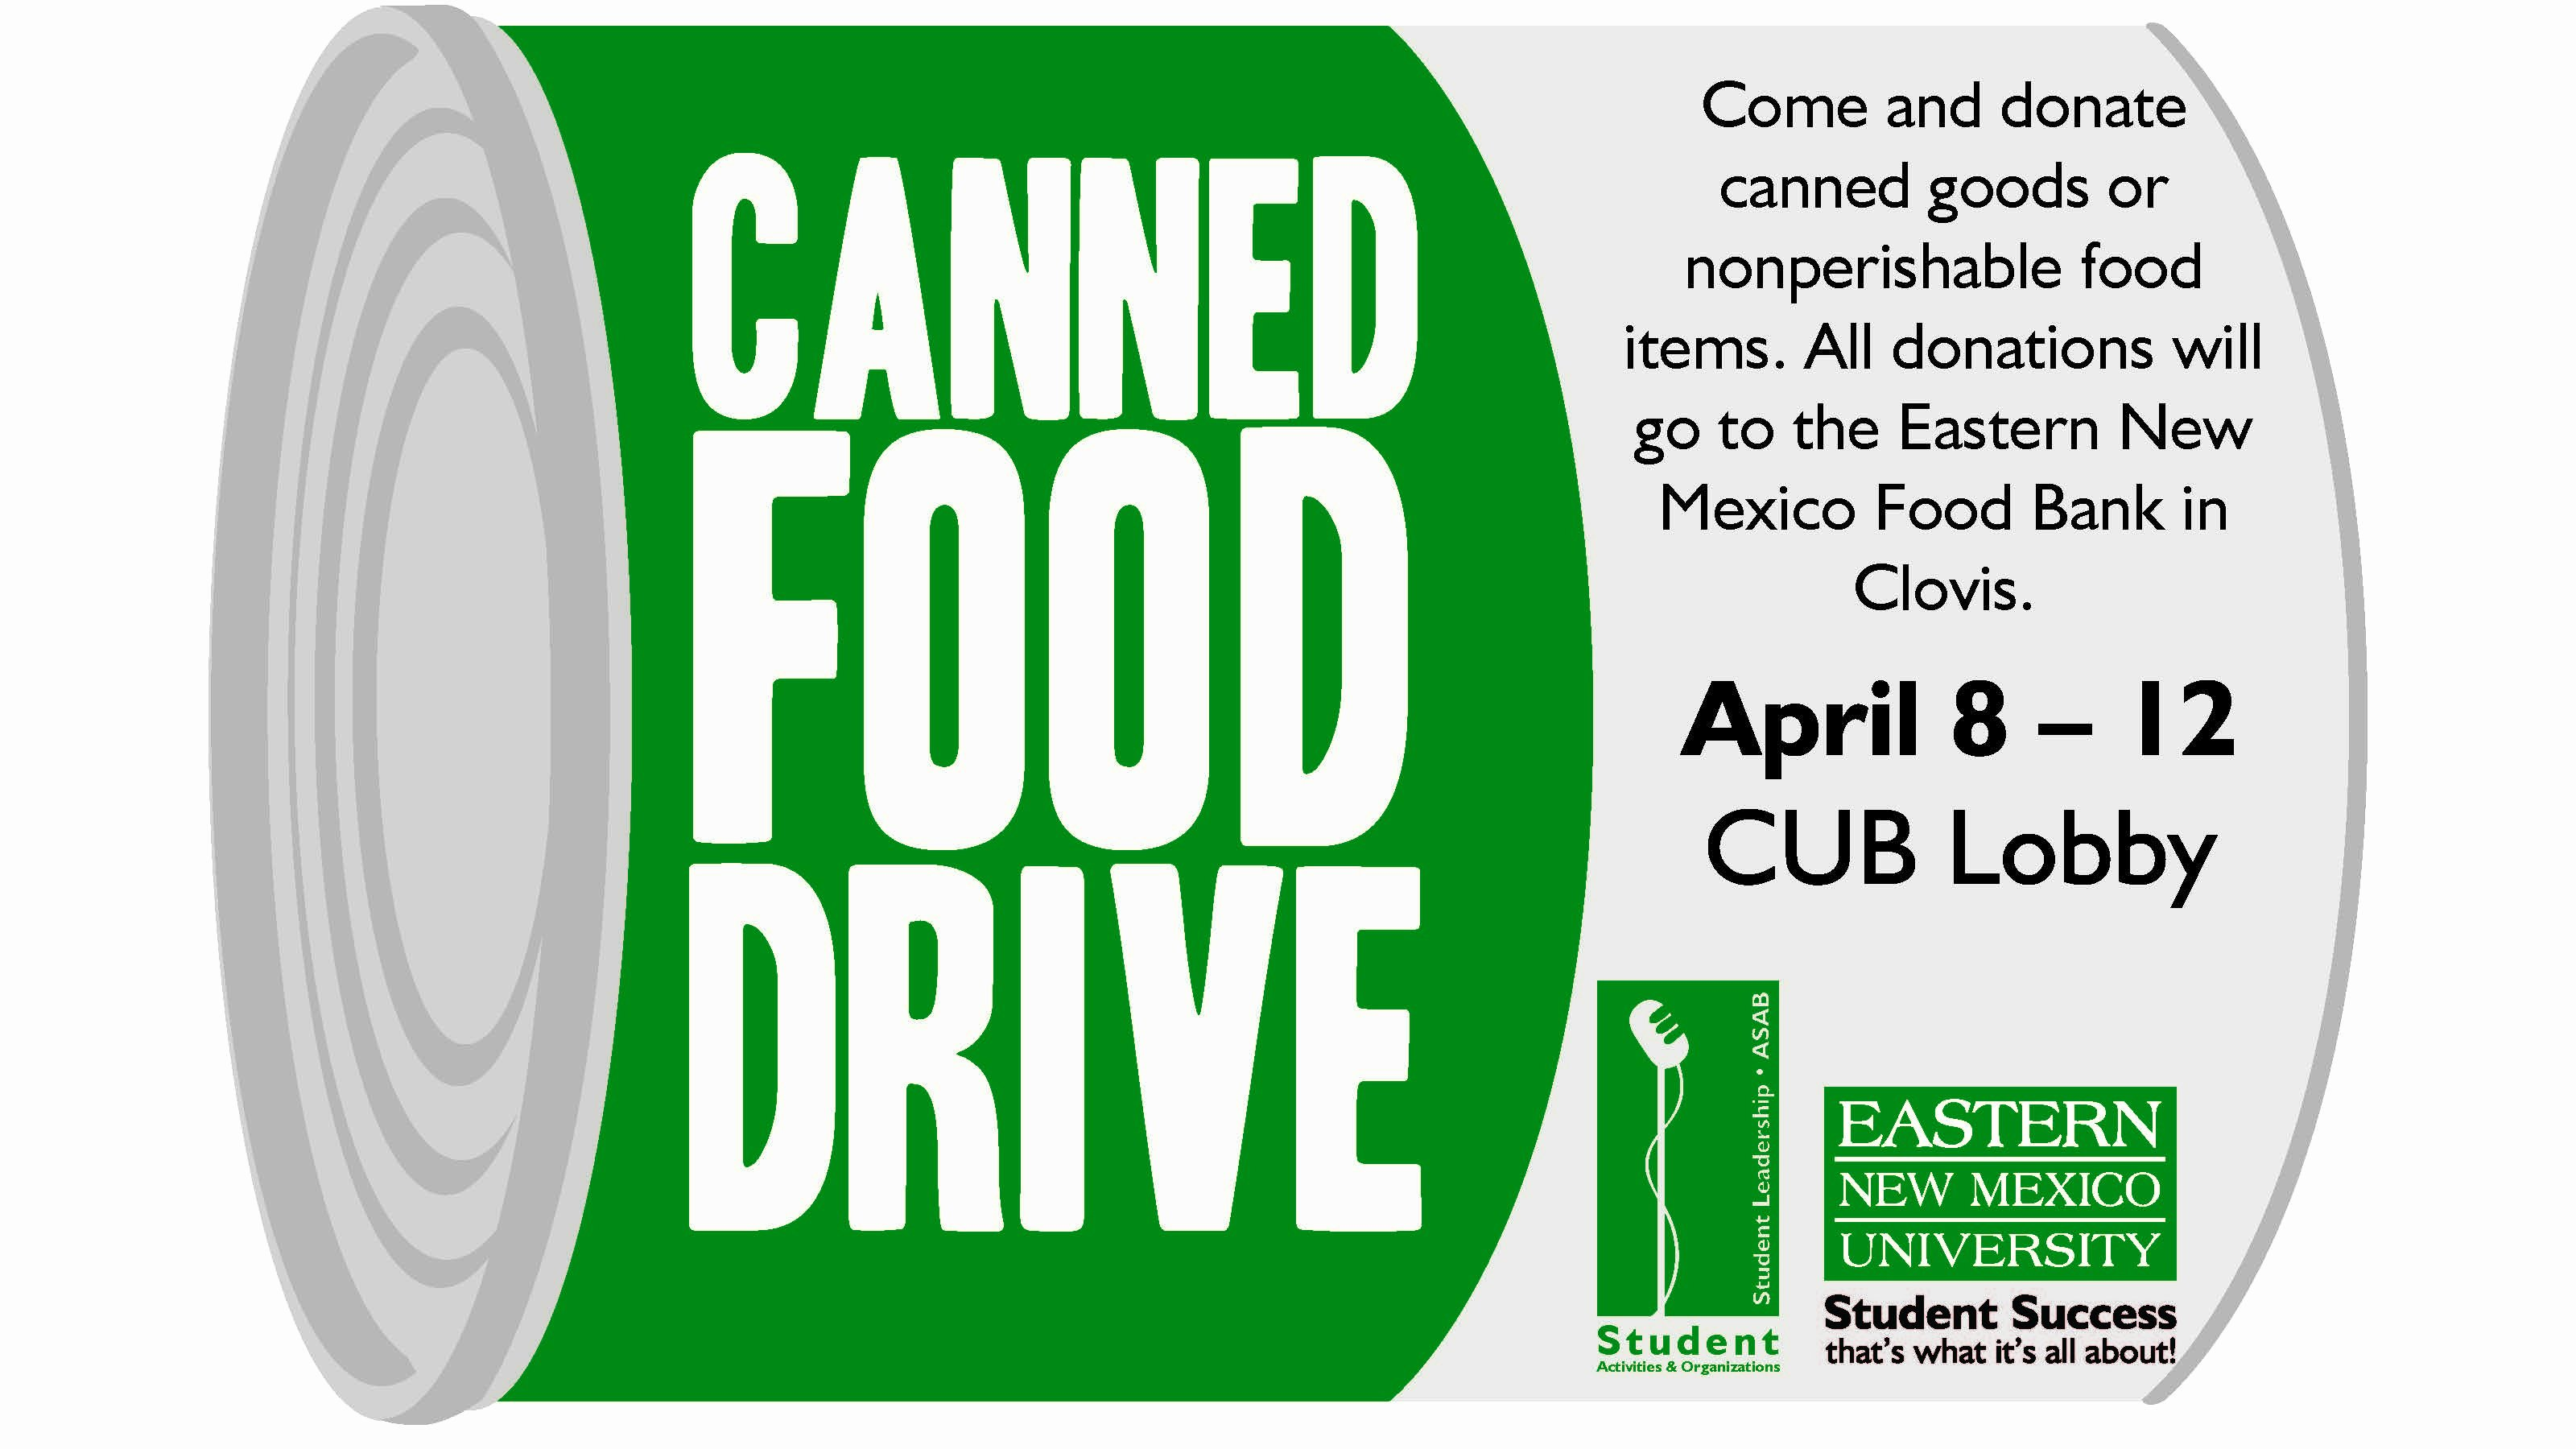 Canned Food Drive Flyer Template Awesome Enmus Canned Food Driv with Customizable Design Templates